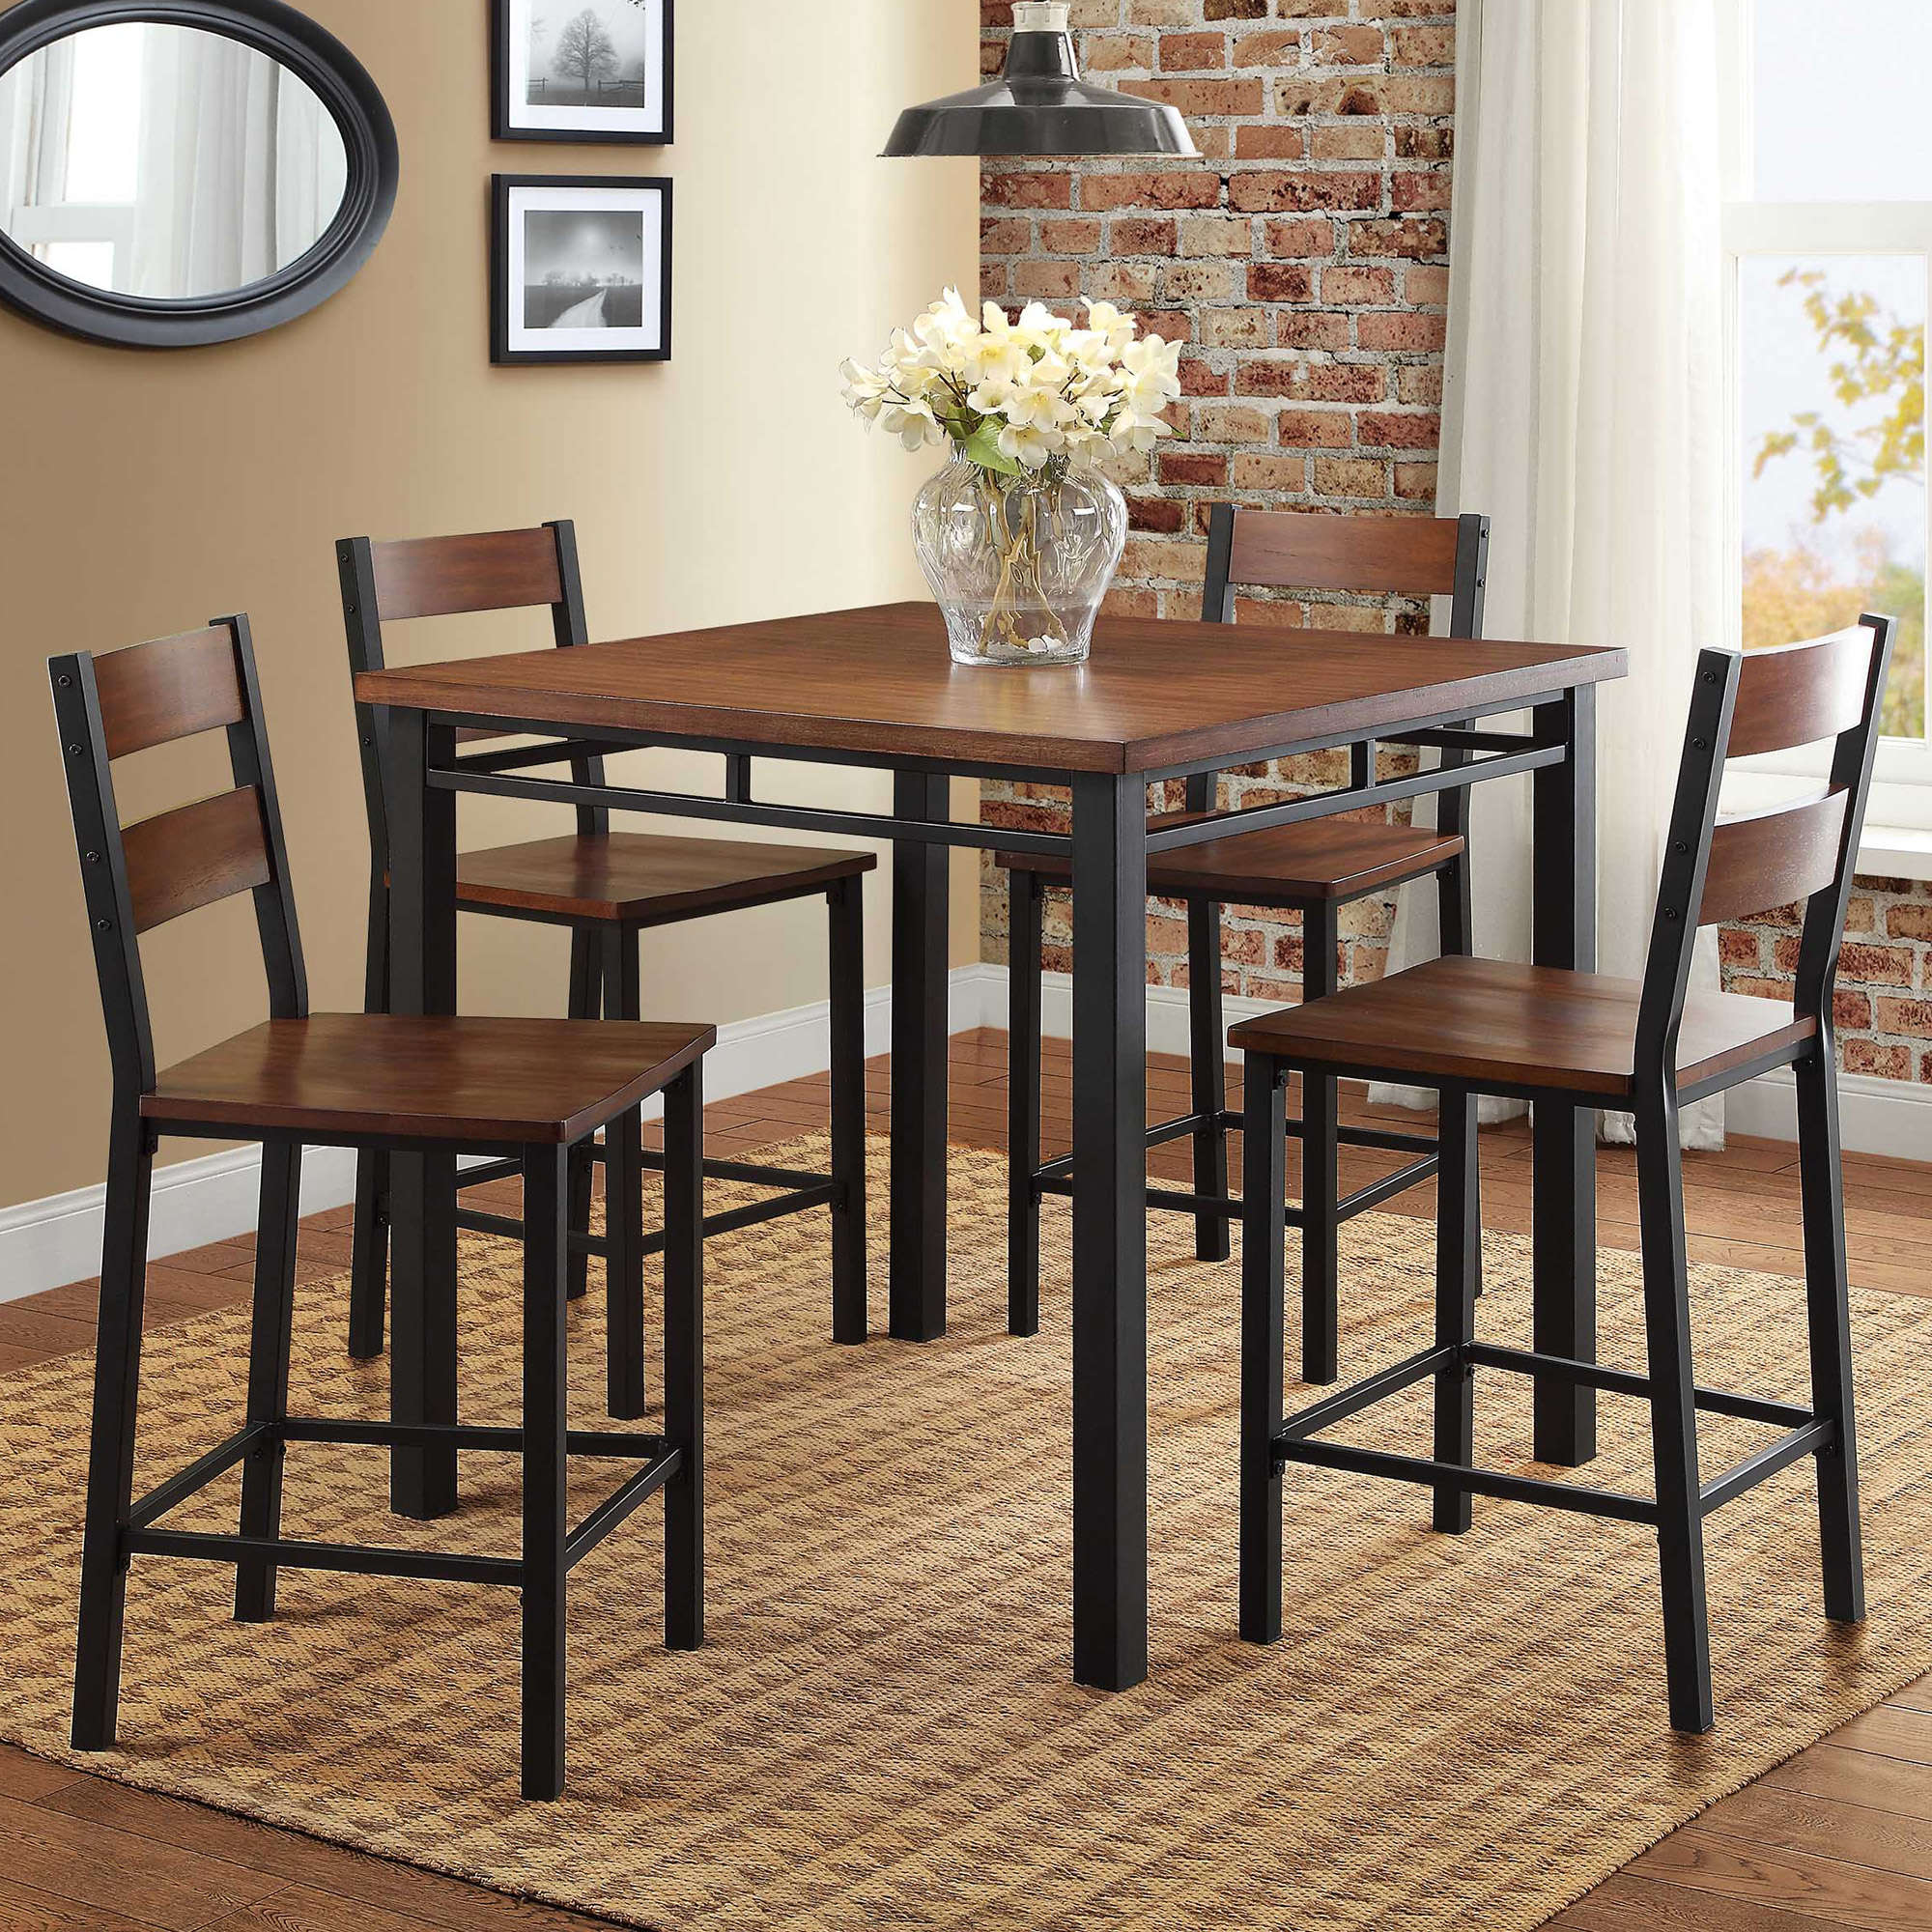 Better Homes U0026 Gardens Mercer 5 Piece Counter Height Dining Set, Vintage  Oak   Walmart.com